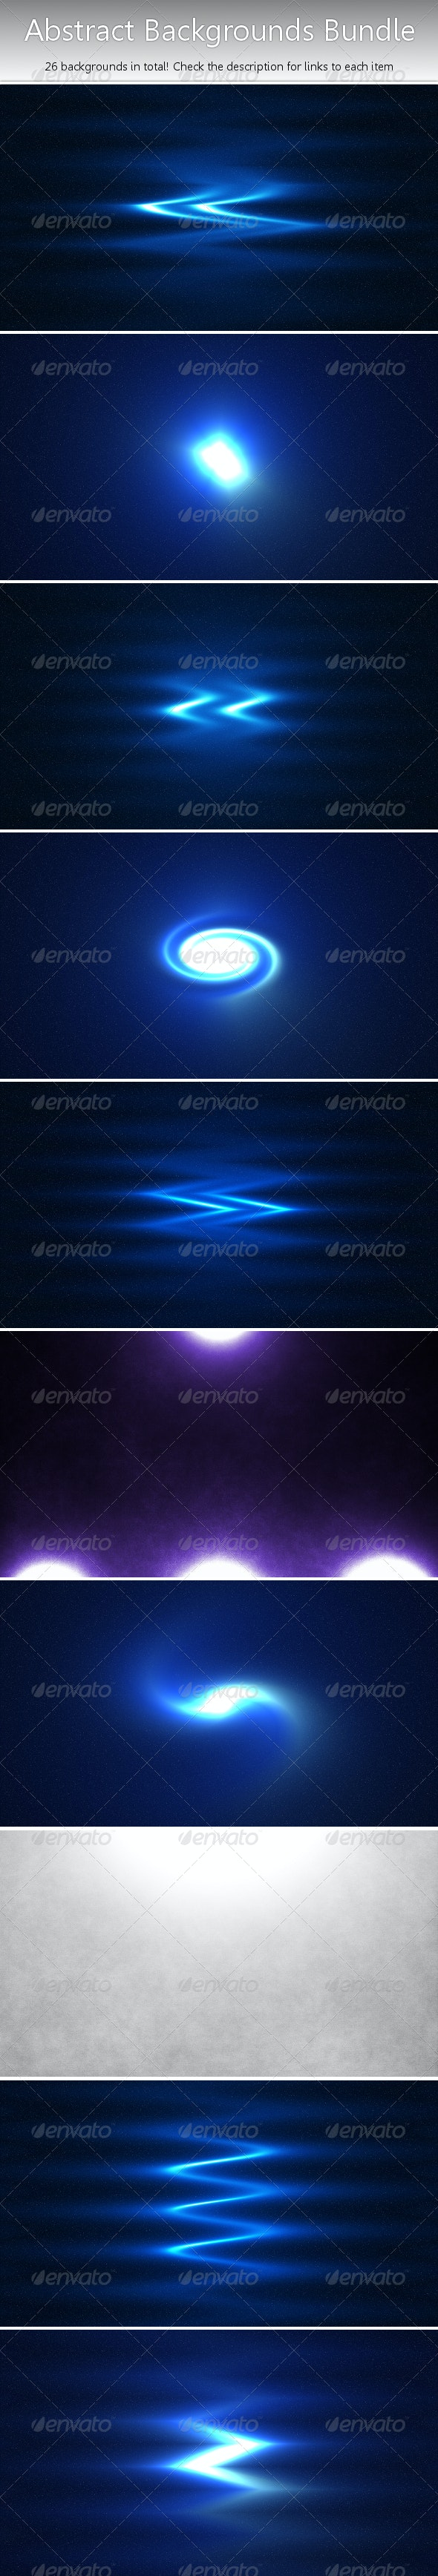 Abstract Background/Wallpaper Bundle - Abstract Backgrounds